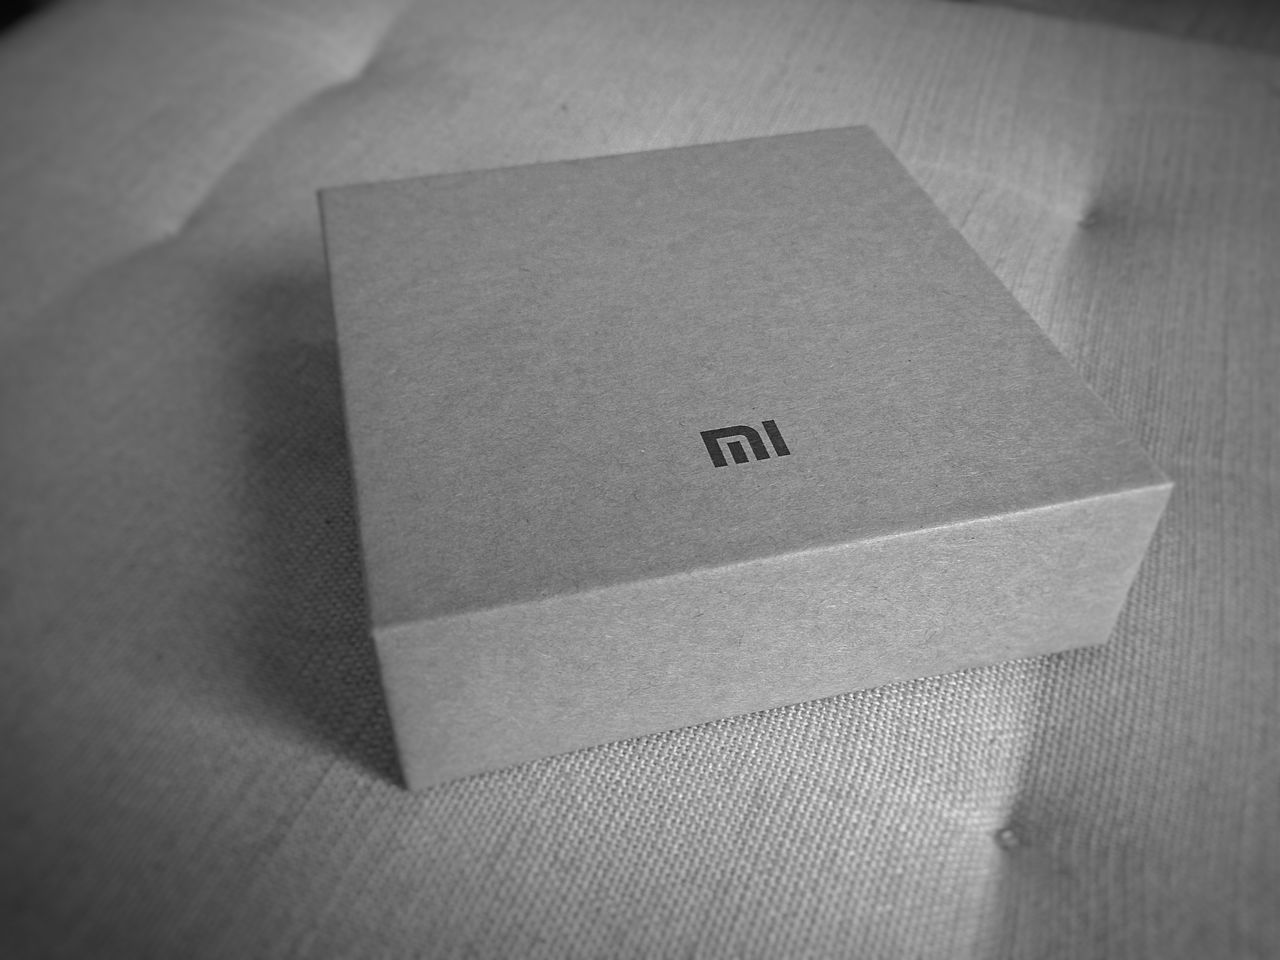 Black And White No People Close-up Indoors  Day Mobile Photography Technology Tech Technology I Can't Live Without Technics Technology Addiction Technologies Box Unboxing Product Xiaomi Mi Band Fitness Fit Accessory Accesories Style Healthy Lifestyle Health